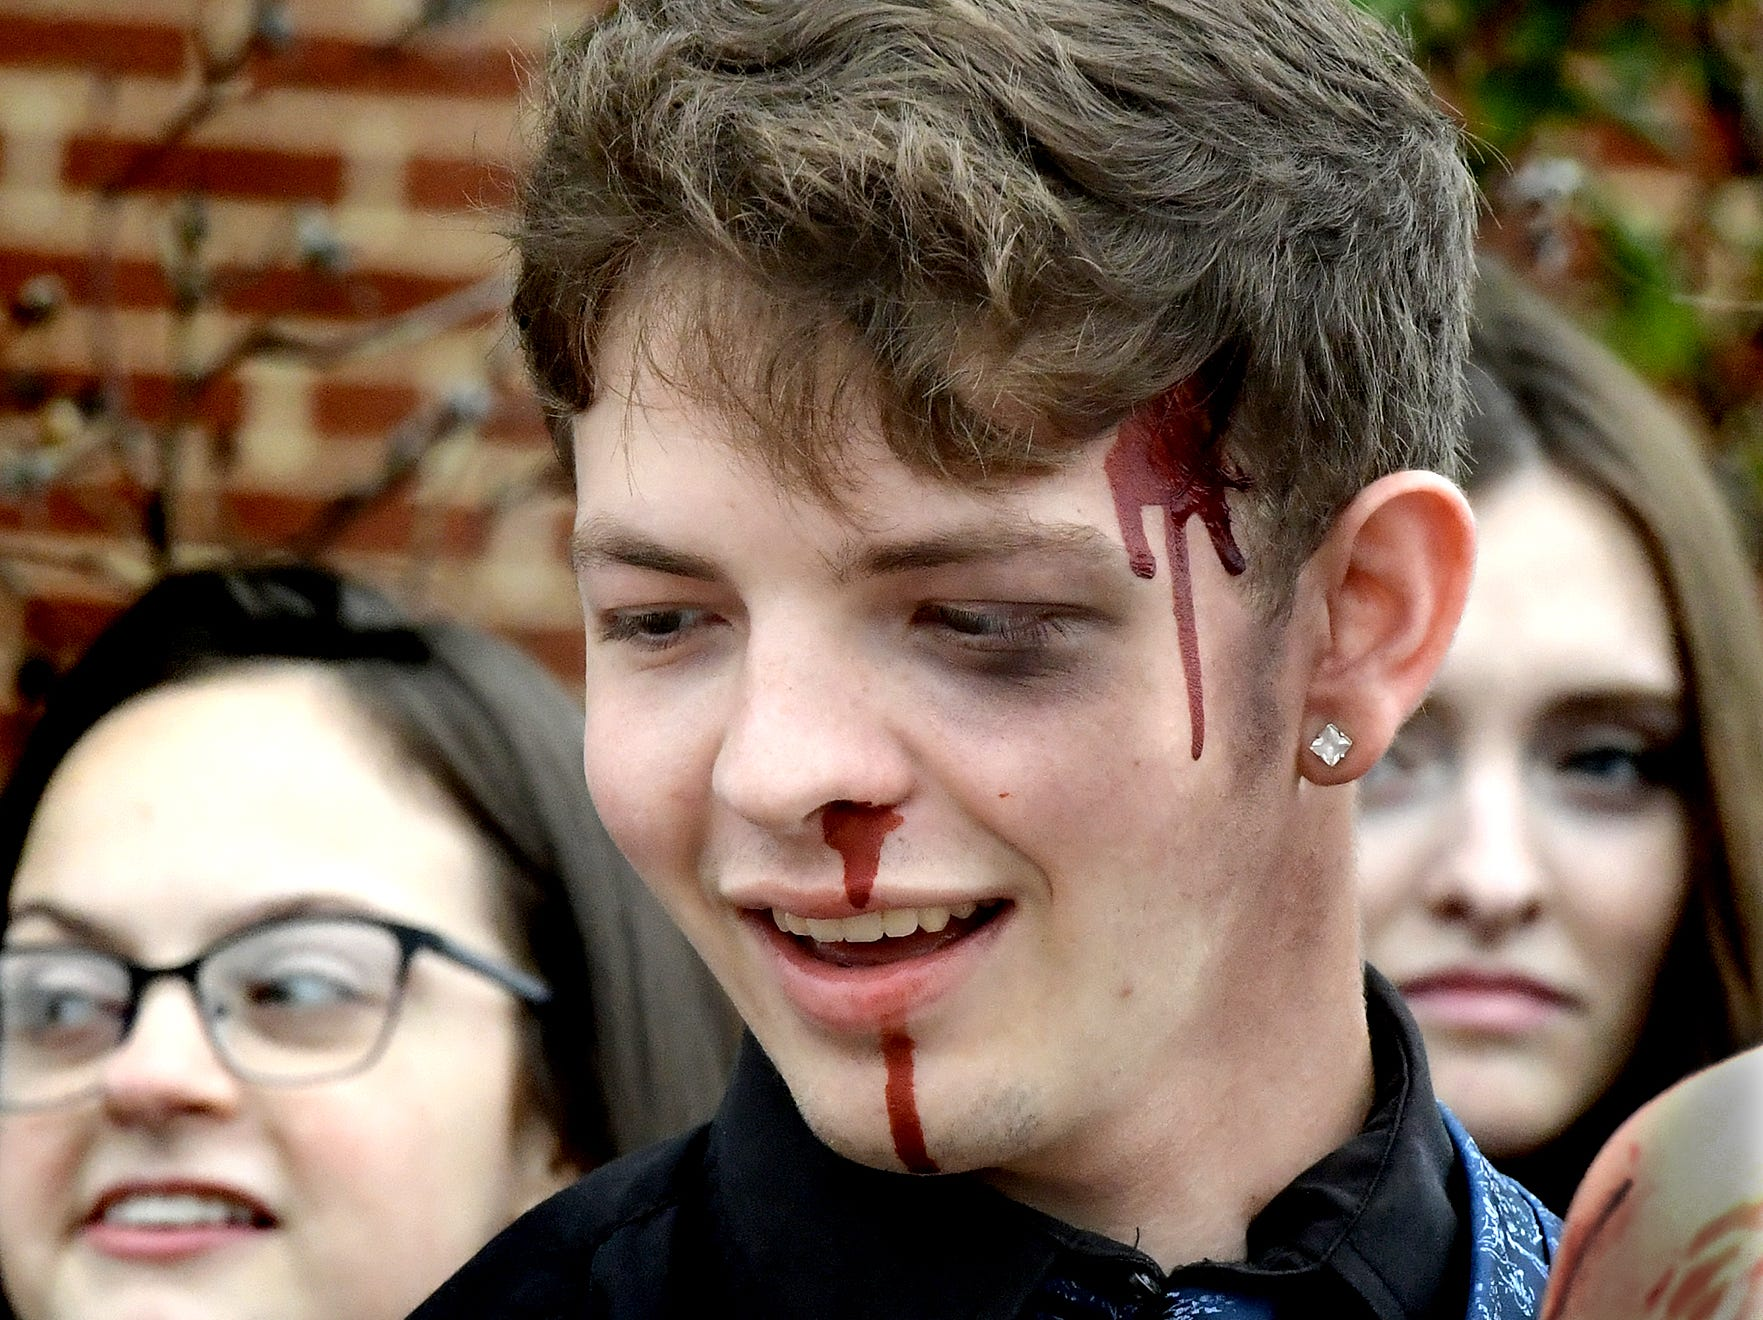 Dover High School mock accident victim, senior Bronson Bitner, sports makeup applied prior to the staging of the accident at the Dover Area High School Thursday, May 9, 2019. Local fire, ambulance and police volunteered for the event which reminds high school upperclassmen to be safe during prom season. Dover's prom in Saturday, May 11. Bill Kalina photo